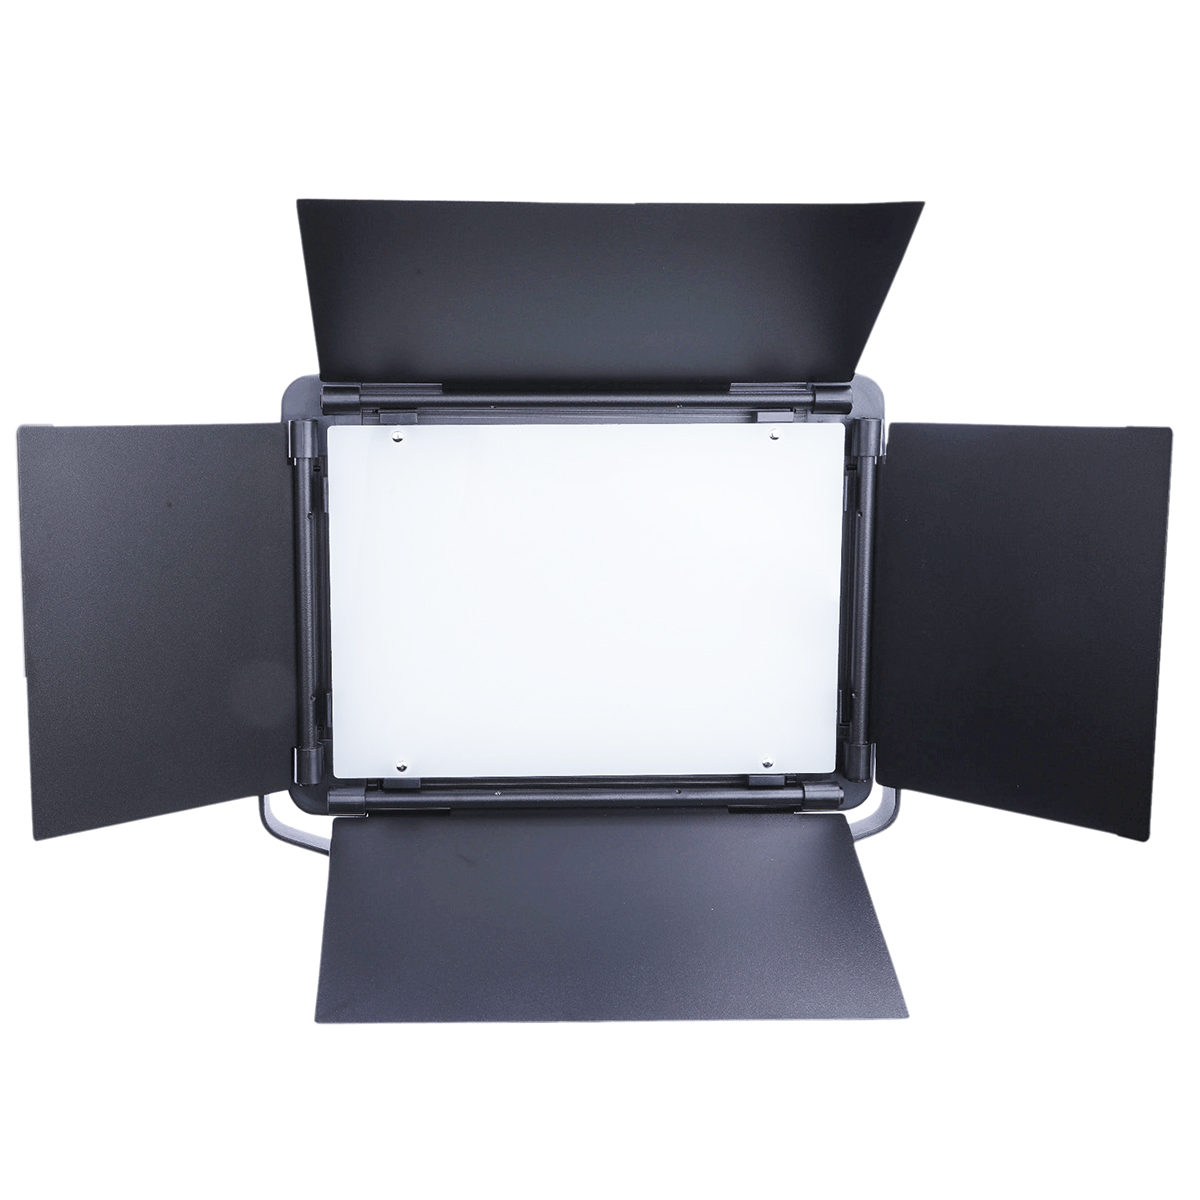 LED-1080DMX NiceFoto 100W Professional flat panel  CRI 95 Bi-color 3200K-6500K, LED video light for photo,video and film